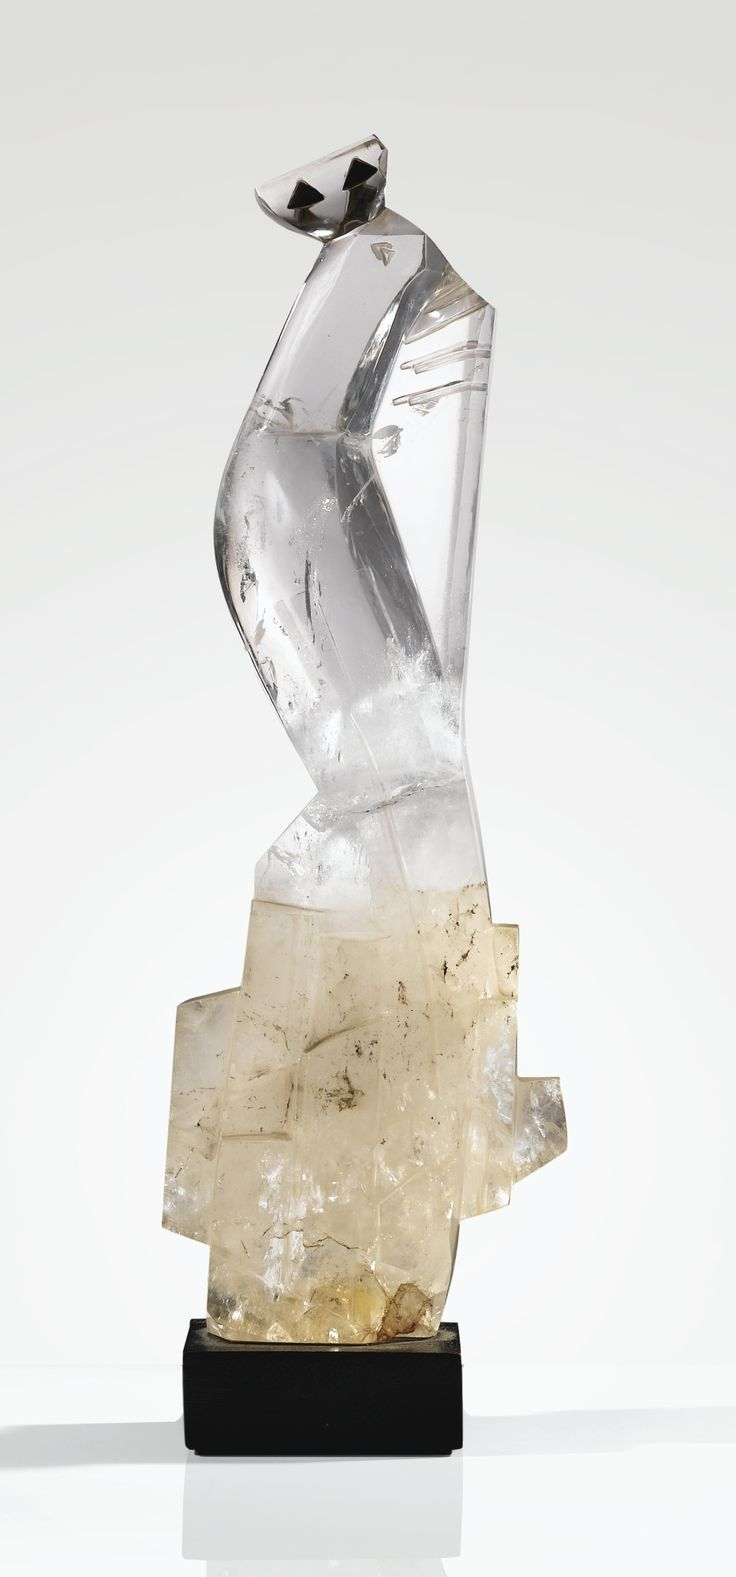 'PAON', A UNIQUE ROCK CRYSTAL AND OBSIDIEN SCULPTURE BY JOSEPH CSAKY, ON LATER WOODEN BASE, 1930   Sotheby's